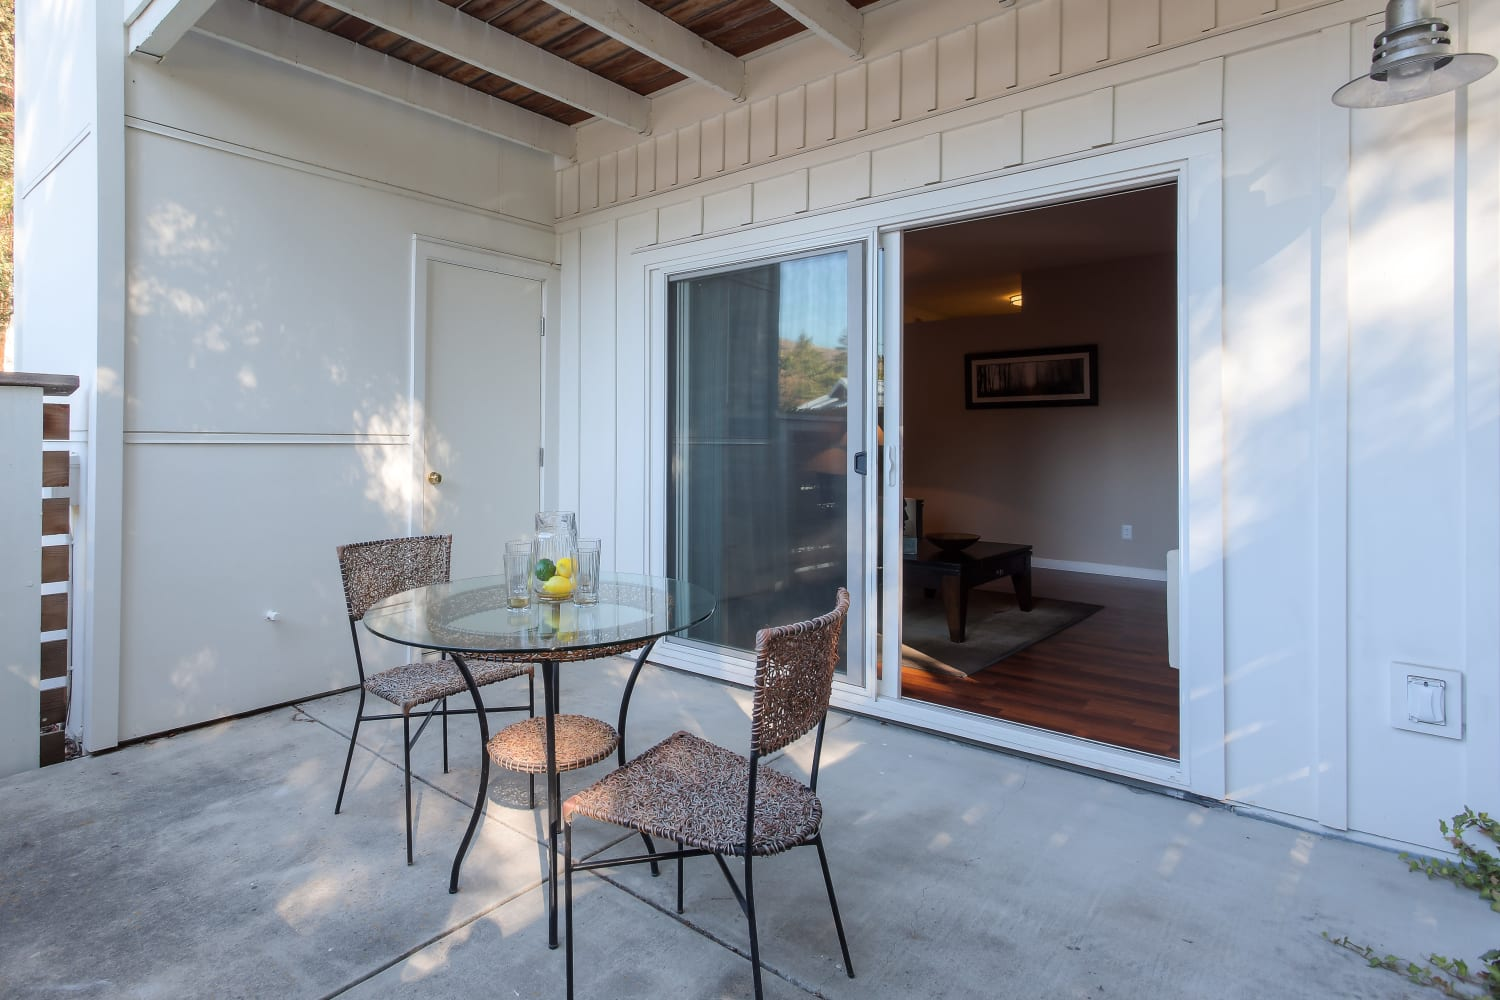 Cotton Wood Apartments in Dublin, California, offer the luxury of a private patio